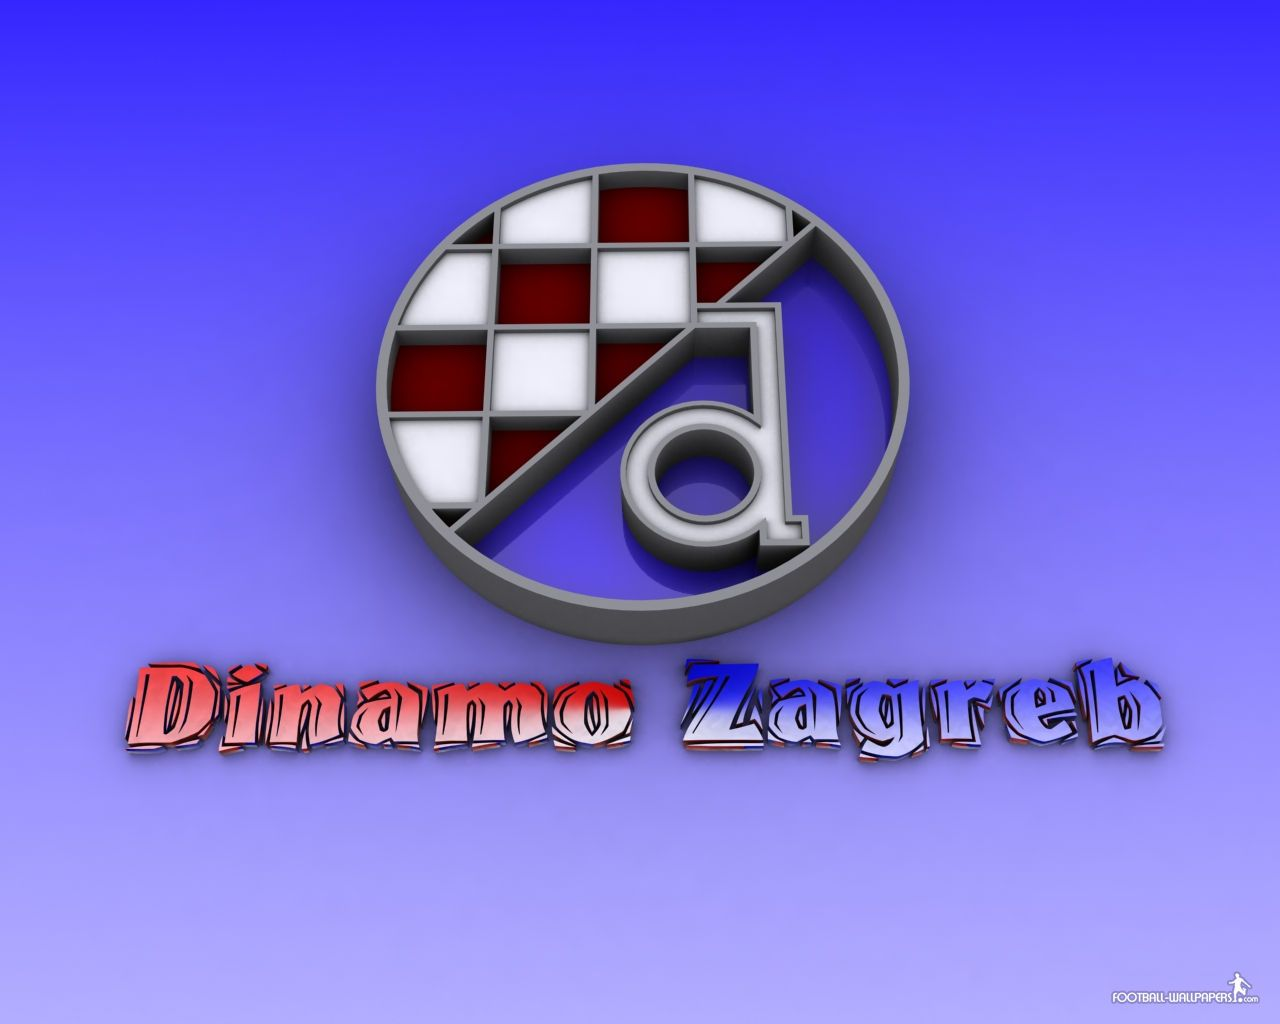 Dinamo Zagreb 3d Wallpaper Wallpapers: Players, Teams, Leagues ...